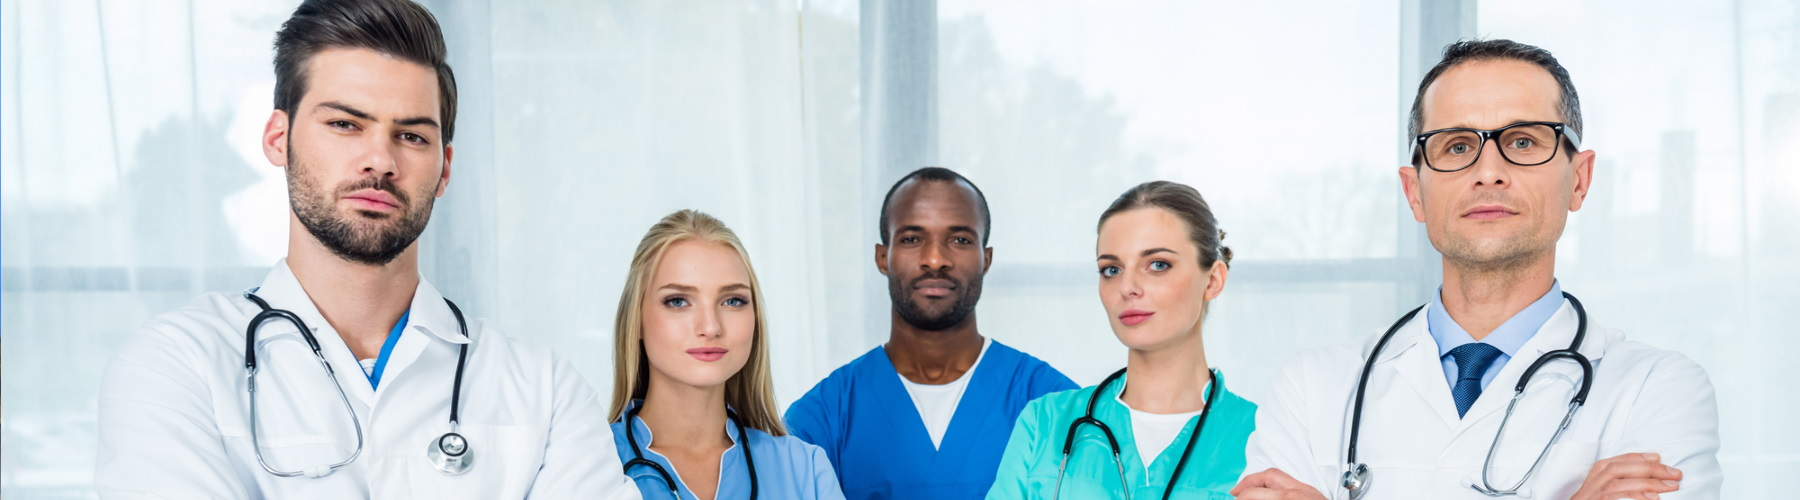 Group of medical professionals with arms crossed